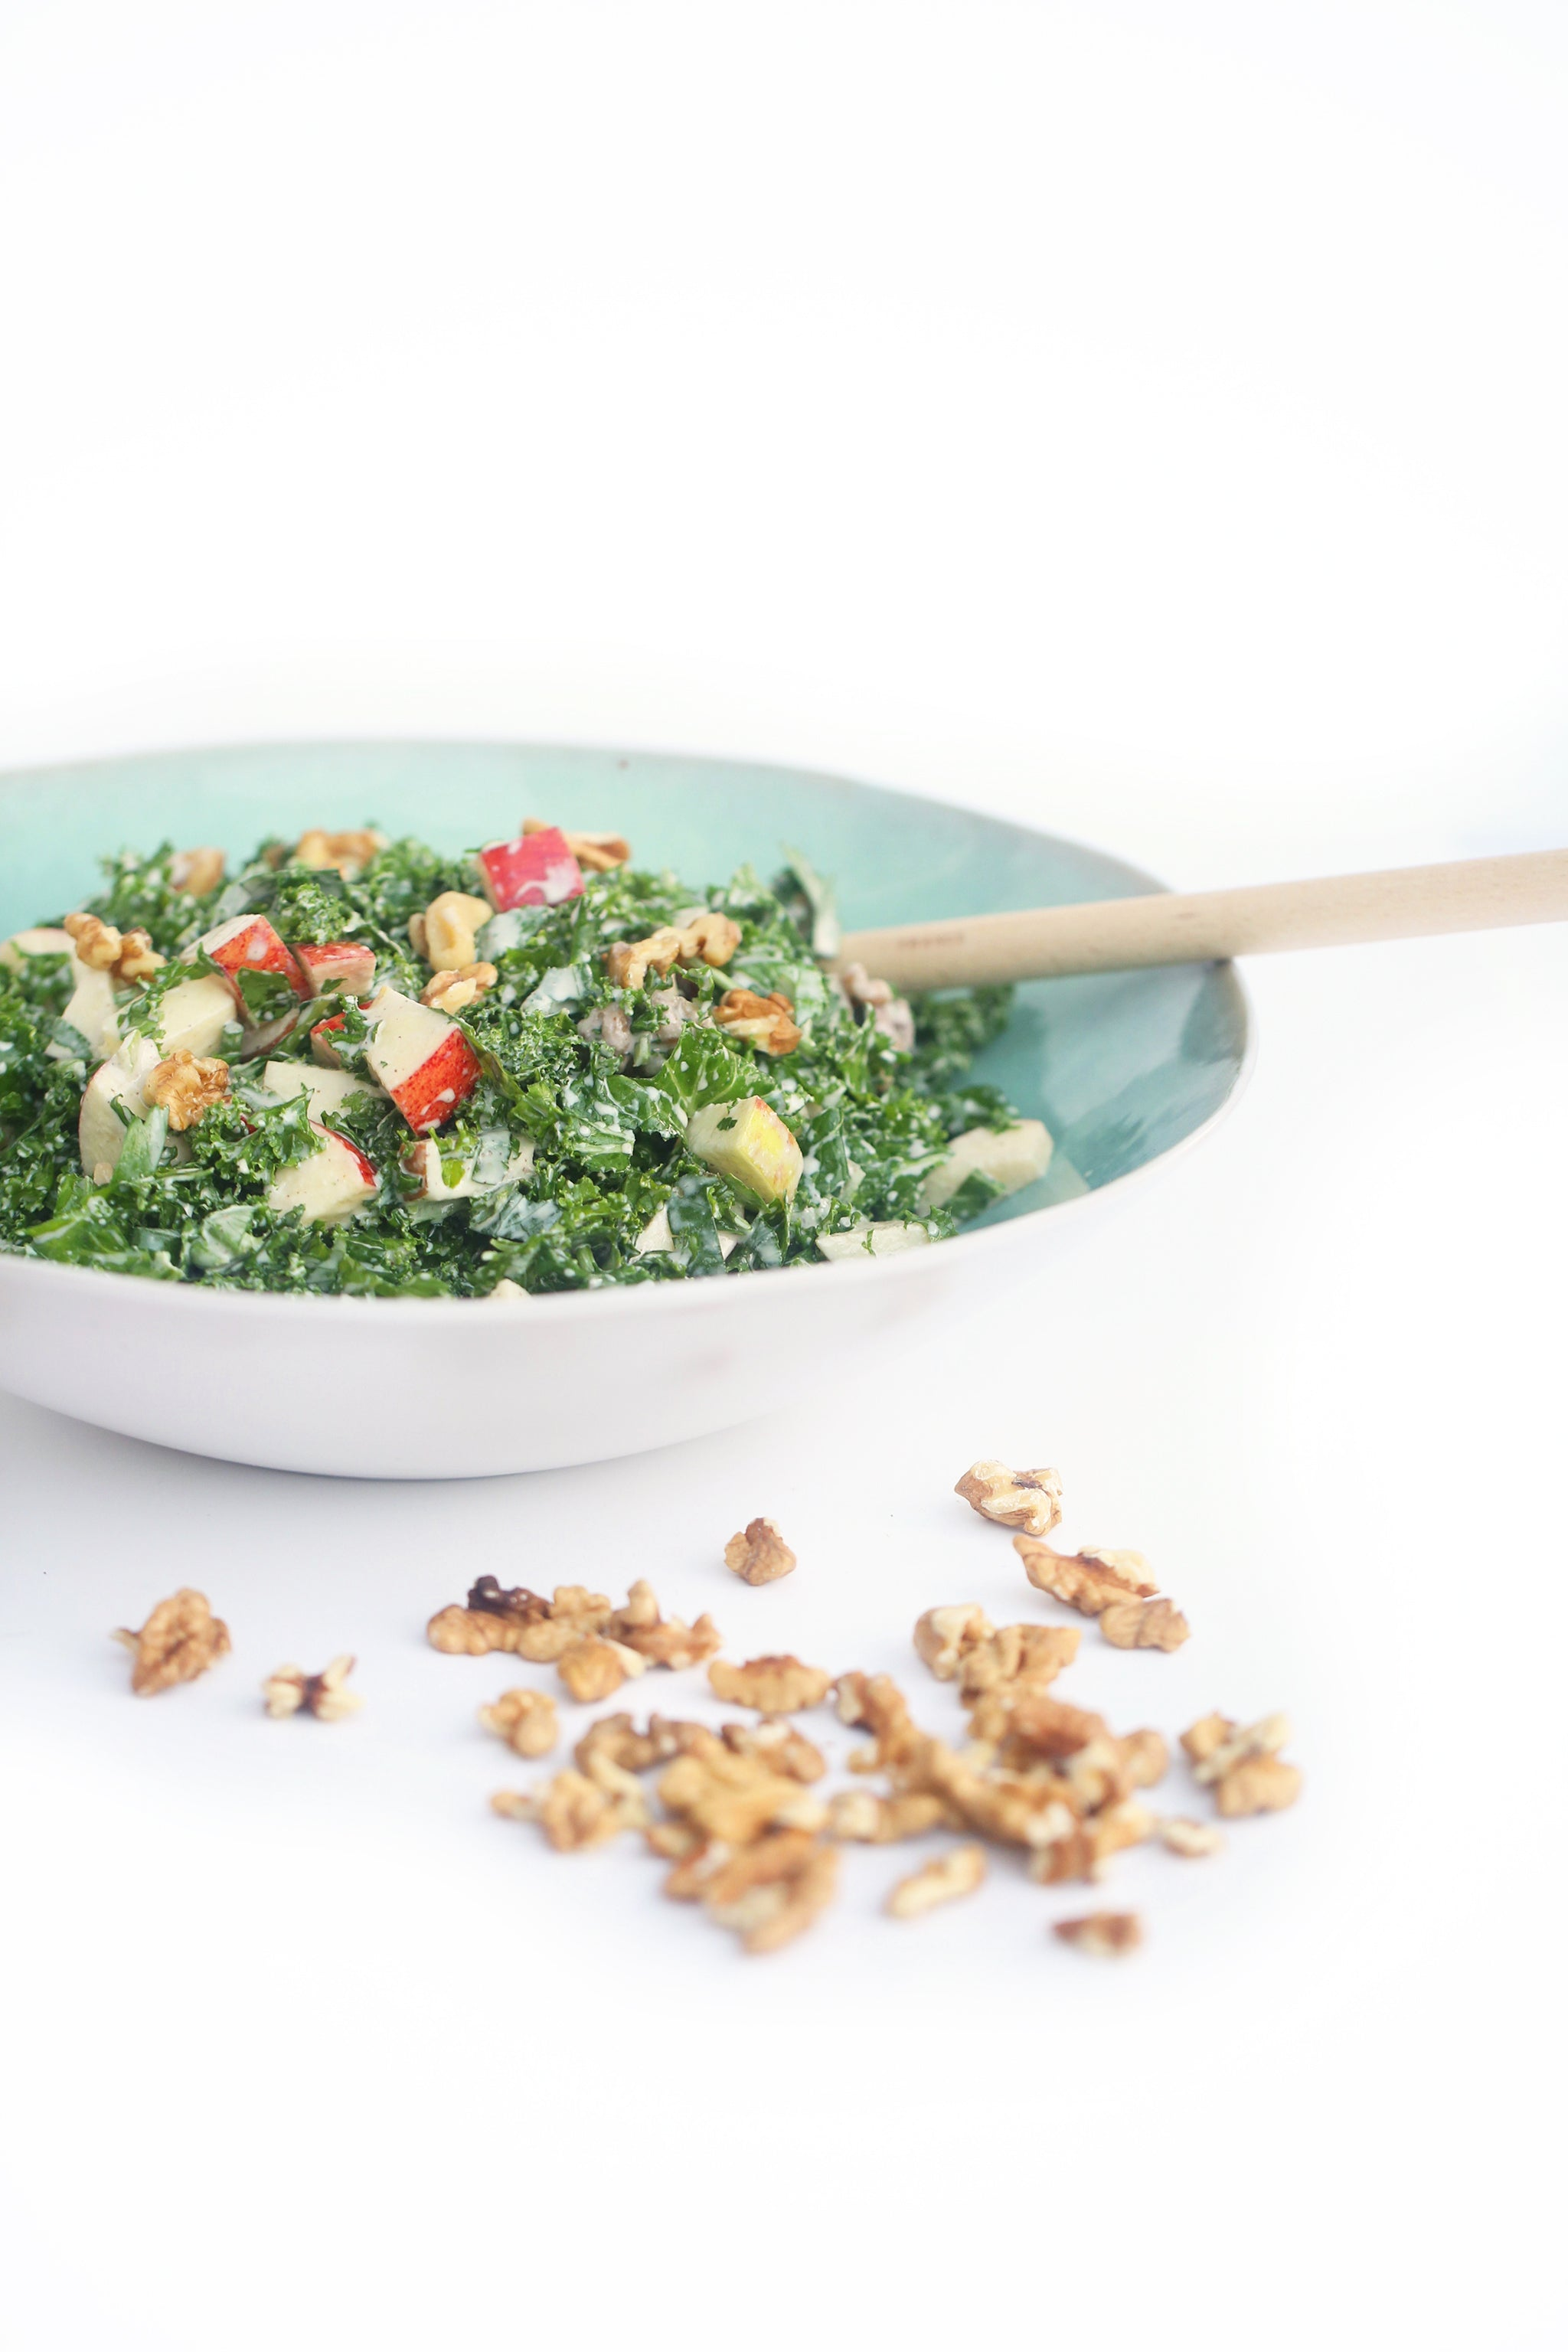 Waldorf Kale Salad - a fresh take on an 80's classic, with a delicious creamy tahini mayonnaise #vegan #dairyfree #salad #healthy #begoodorganics